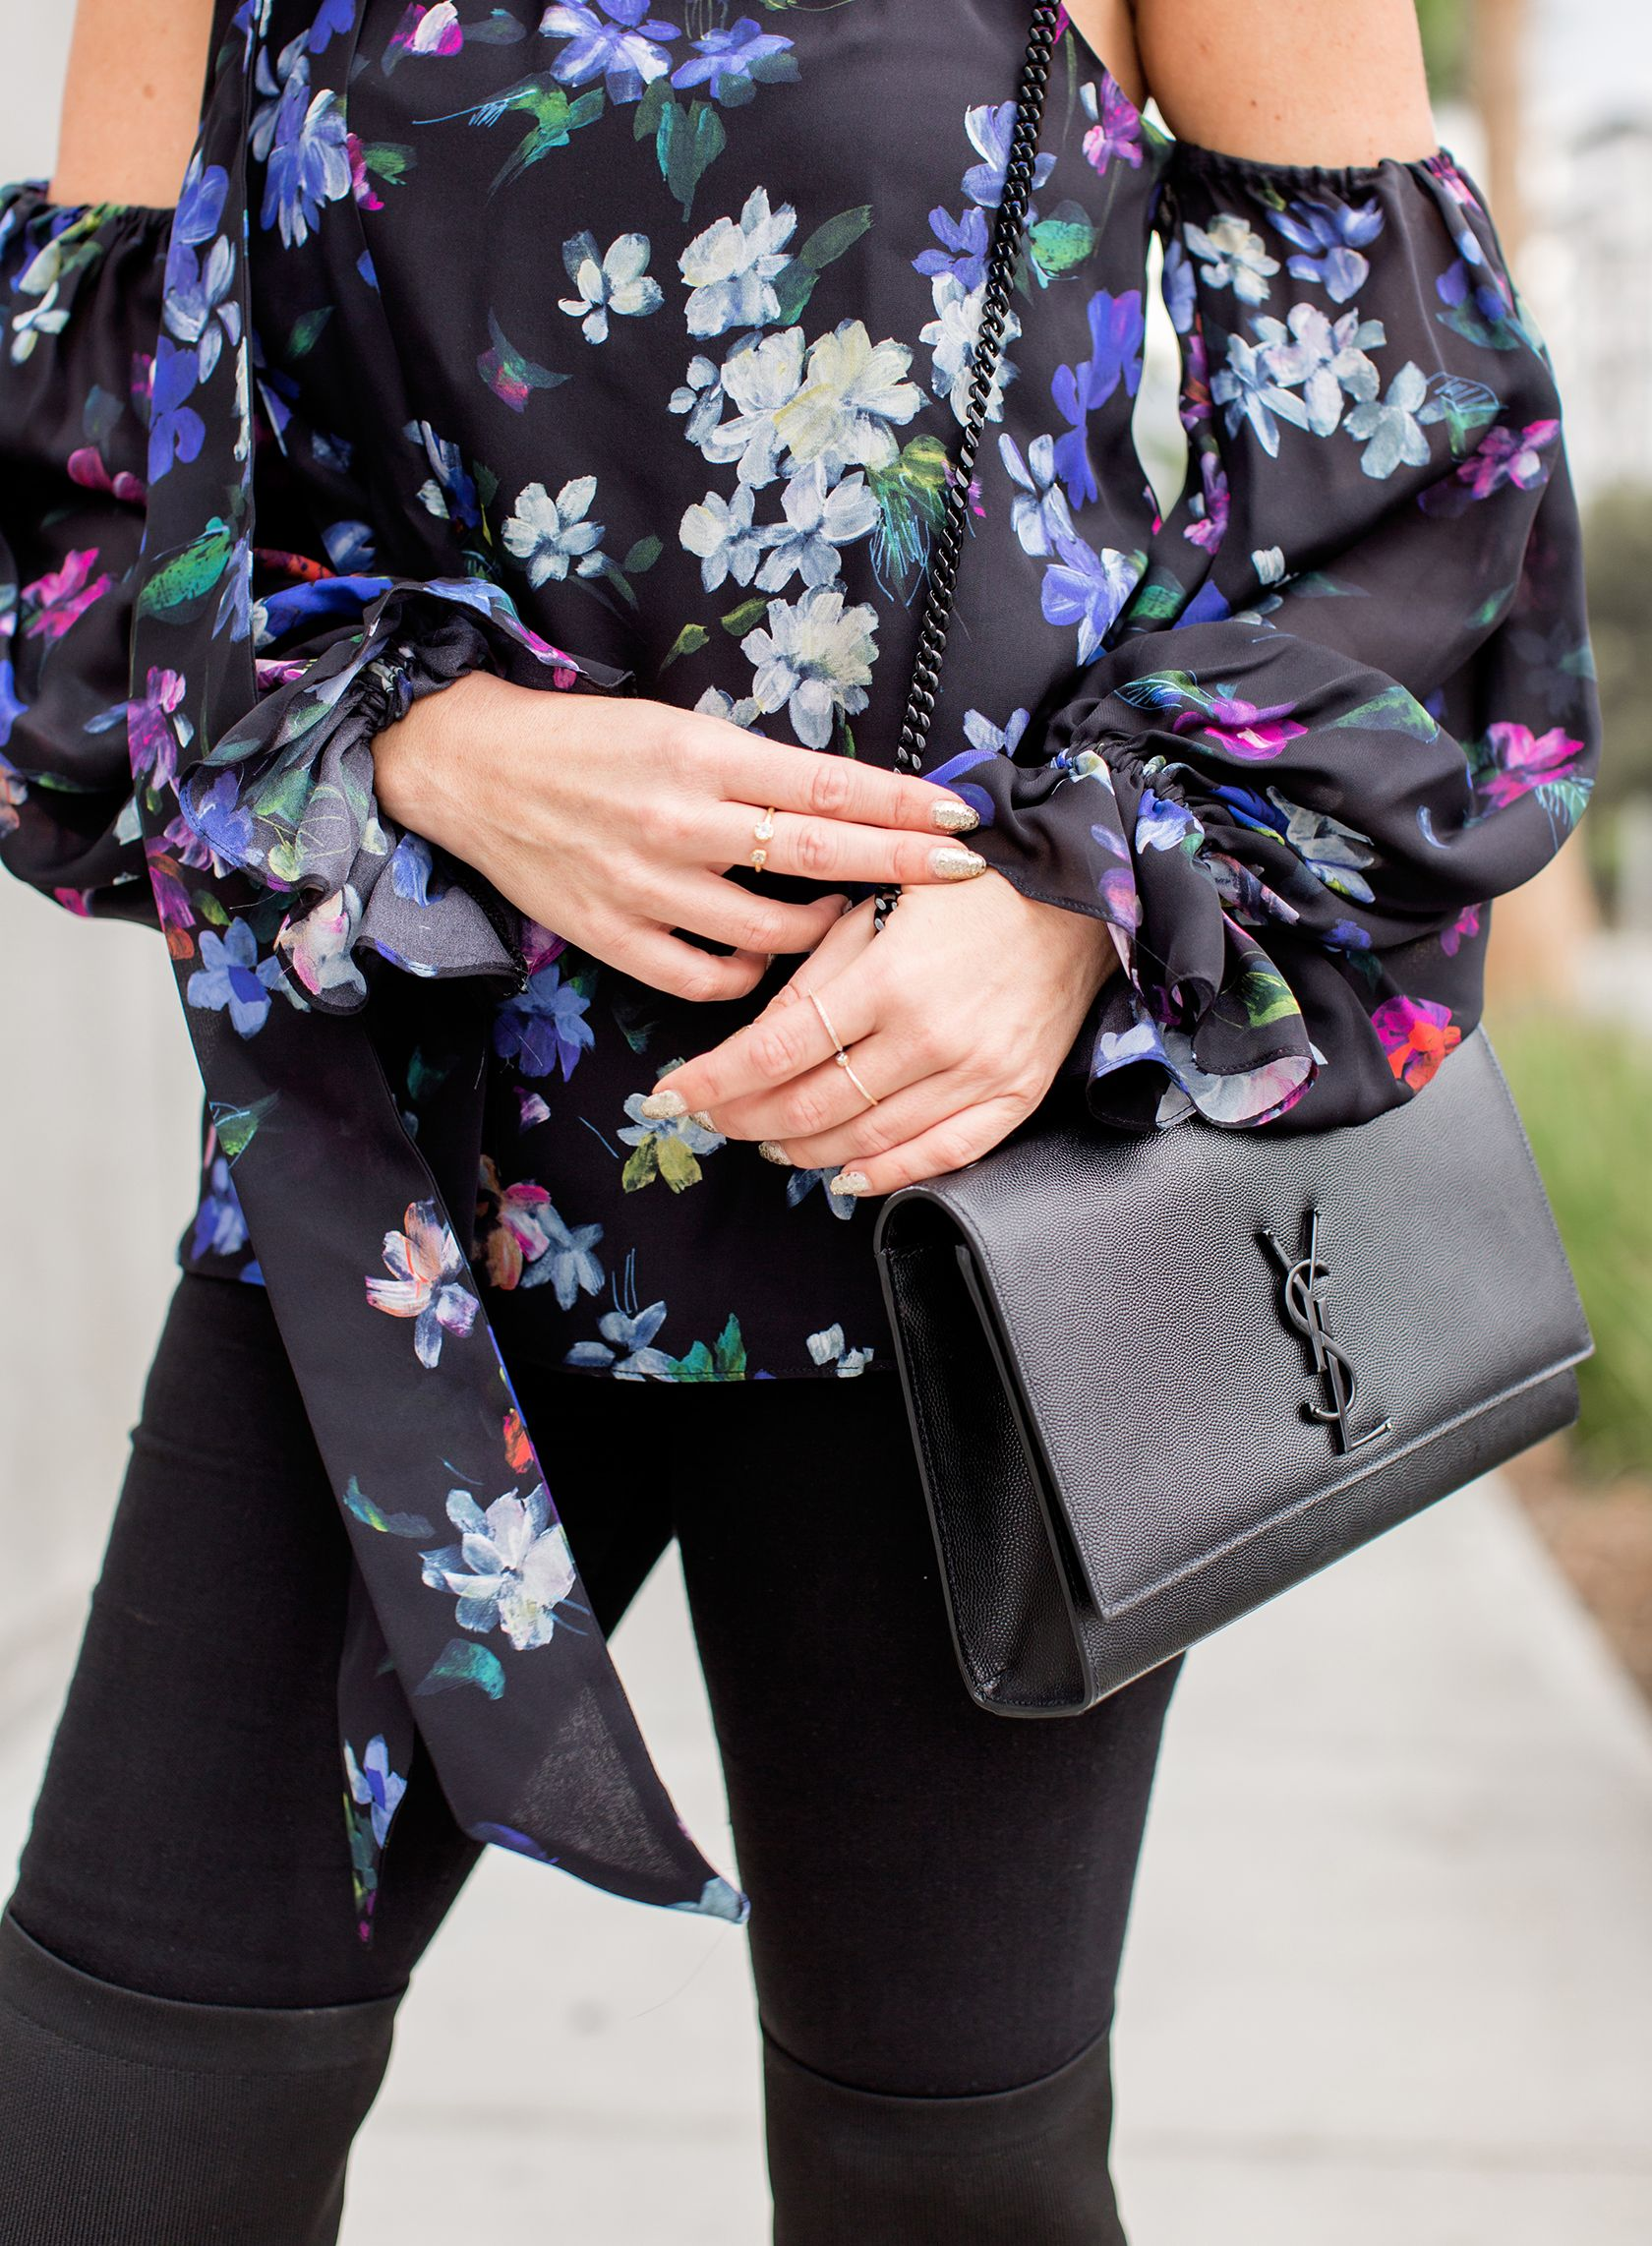 Dark Floral Tops   Fashion 3   Ysl kate bag, Bags, How to wear 6847855a8d